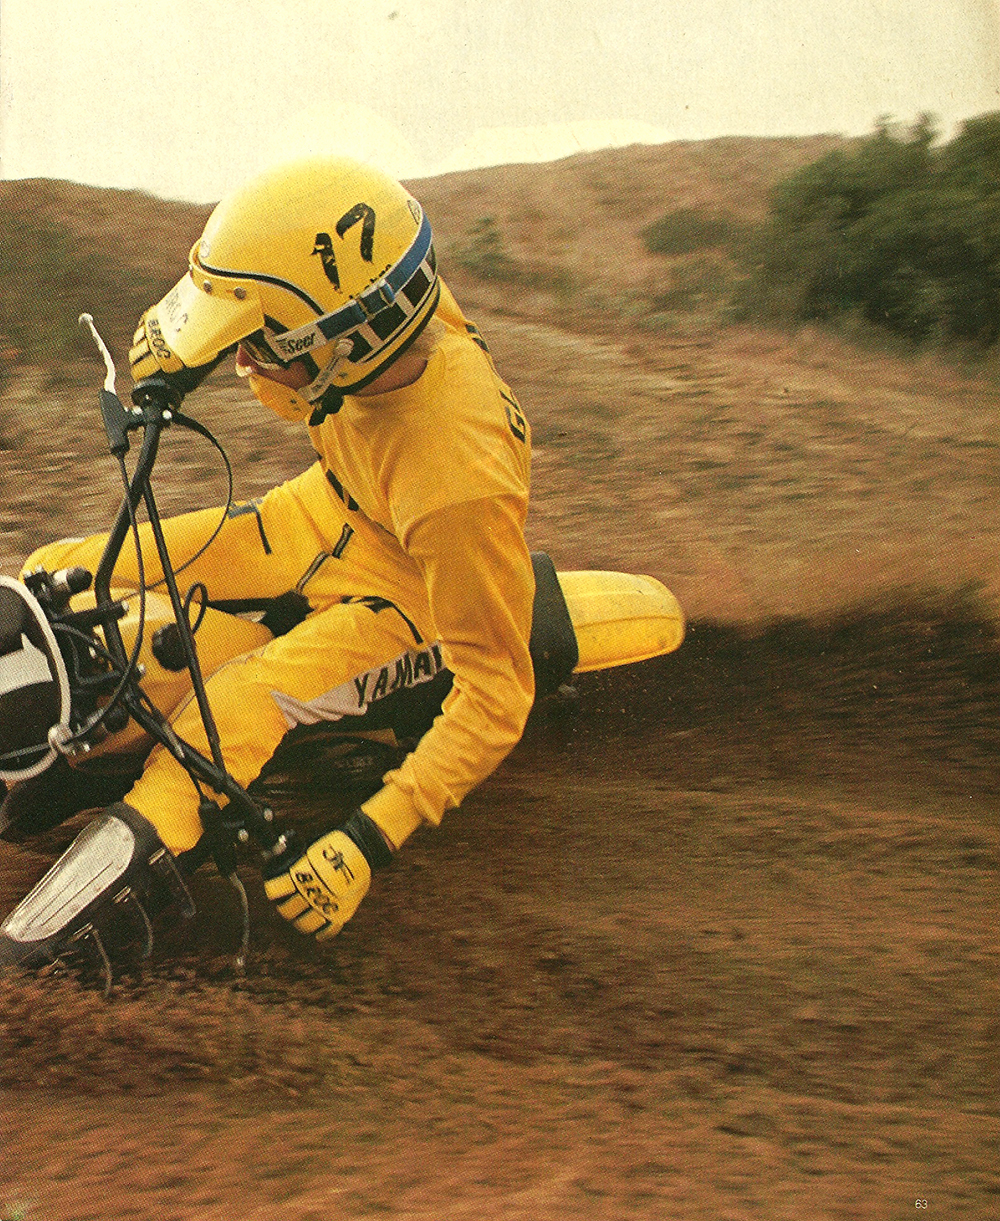 1978 Yamaha YZ250E road test 2.jpg